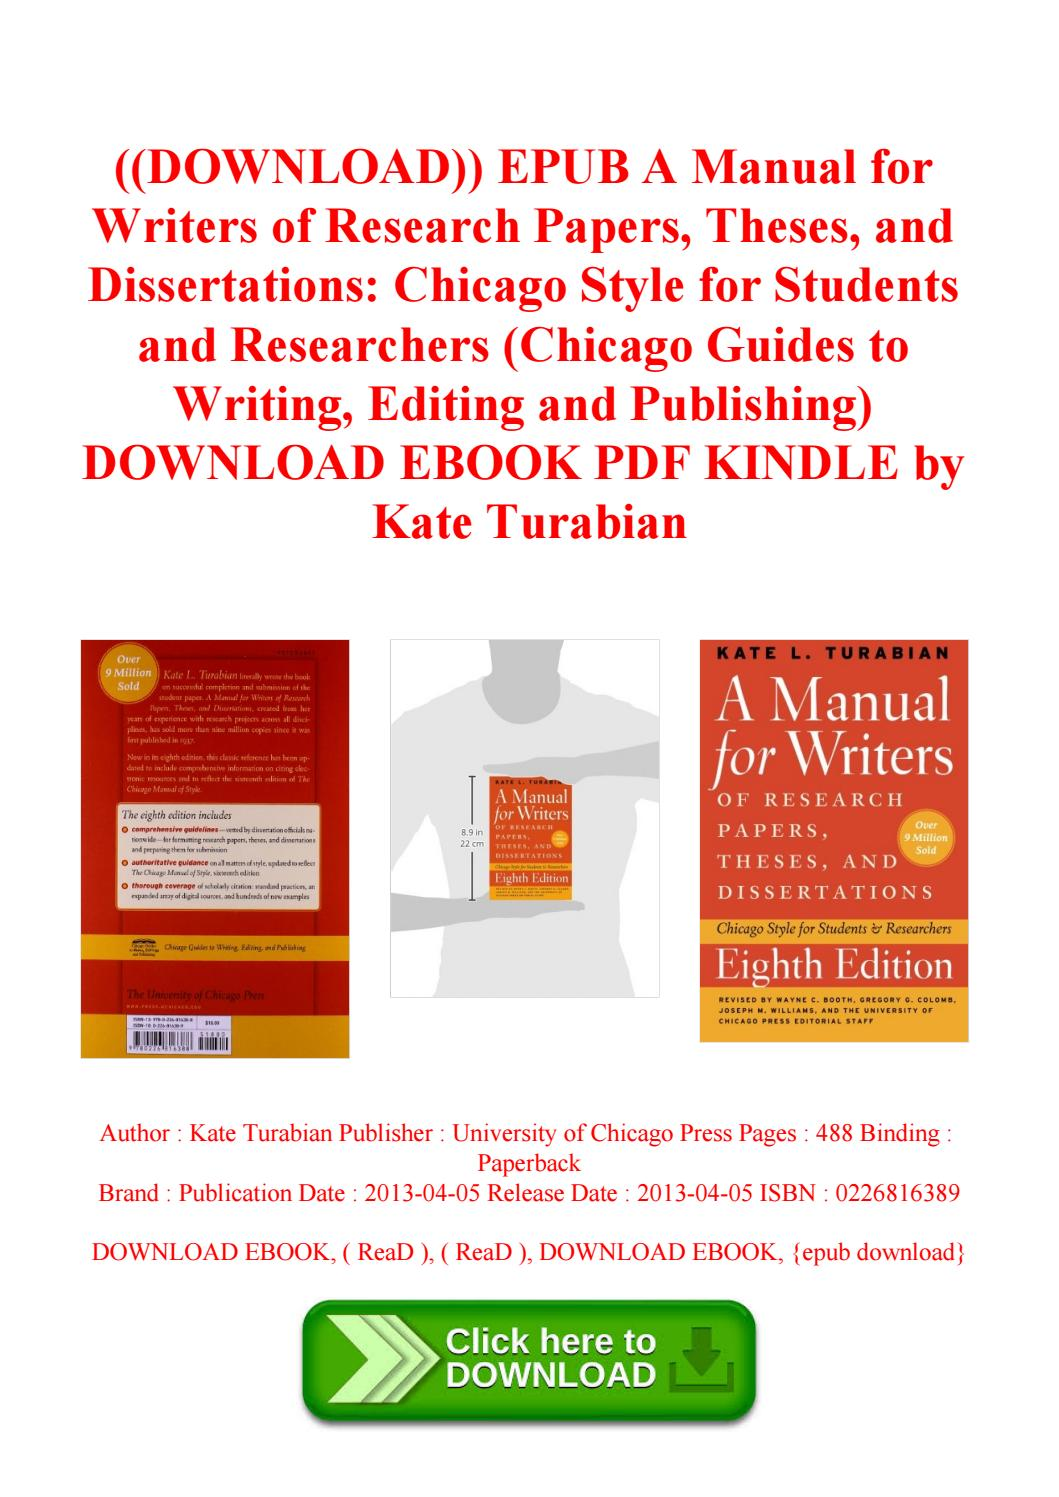 006 Page 1 Research Paper Manual For Writers Of Papers Theses And Sensational A Dissertations Ed. 8 8th Edition Ninth Pdf Full